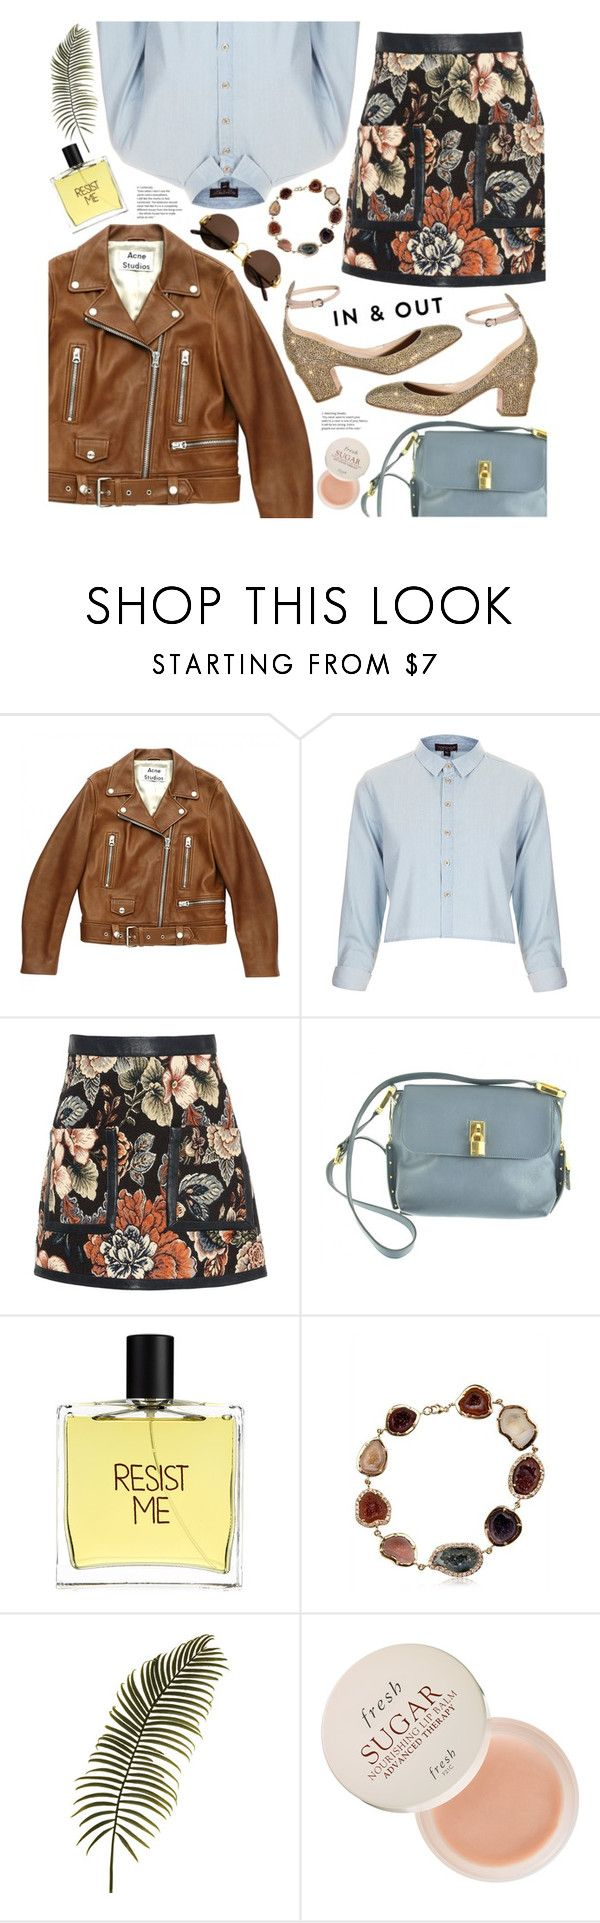 """in & out"" by valentino-lover ❤ liked on Polyvore featuring Acne Studios, Topshop, STELLA McCARTNEY, Marc Jacobs, Liaison De Parfum, Kimberly McDonald, Fresh and Cartier"